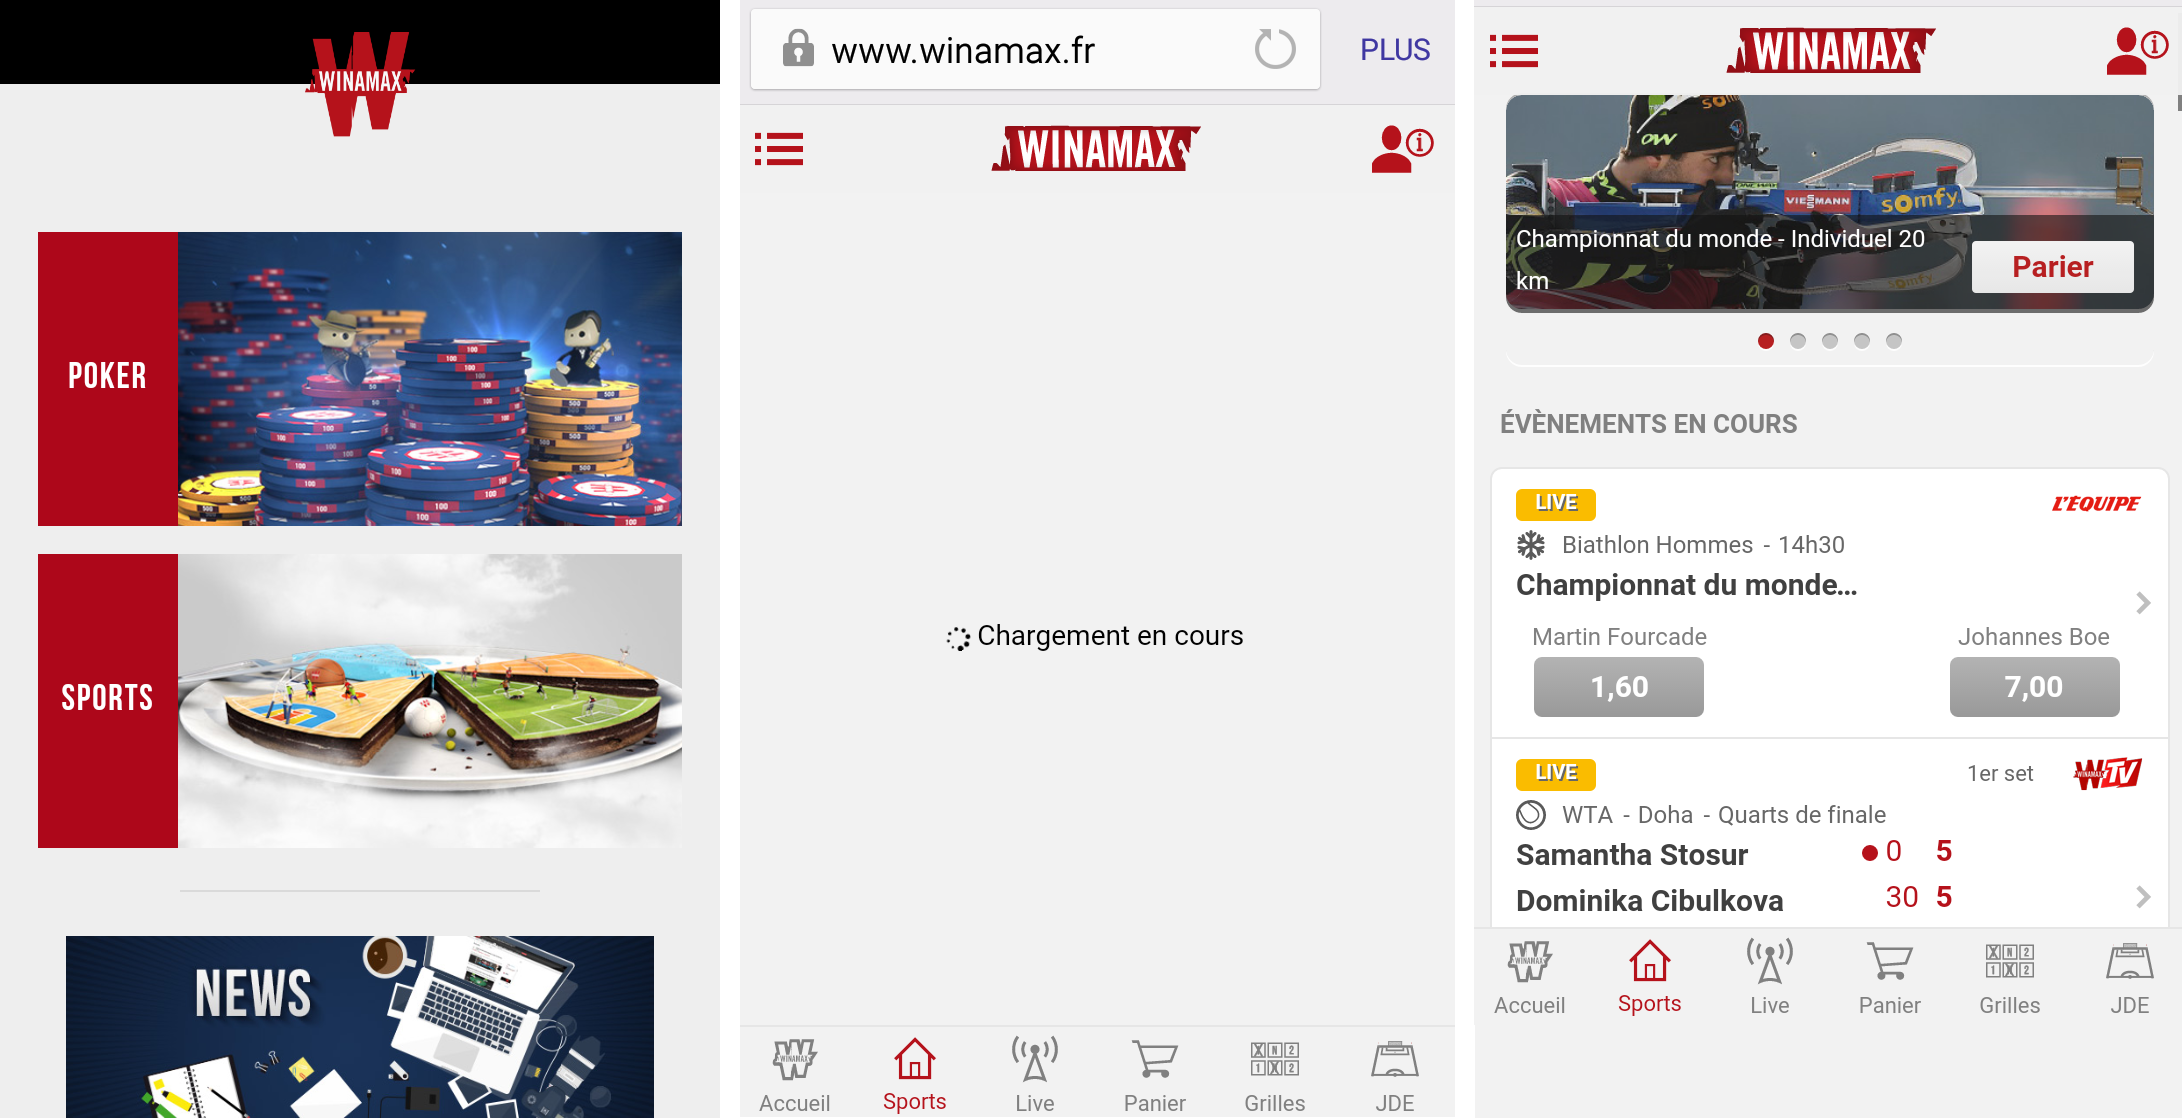 avis sur l'application Winamax sport